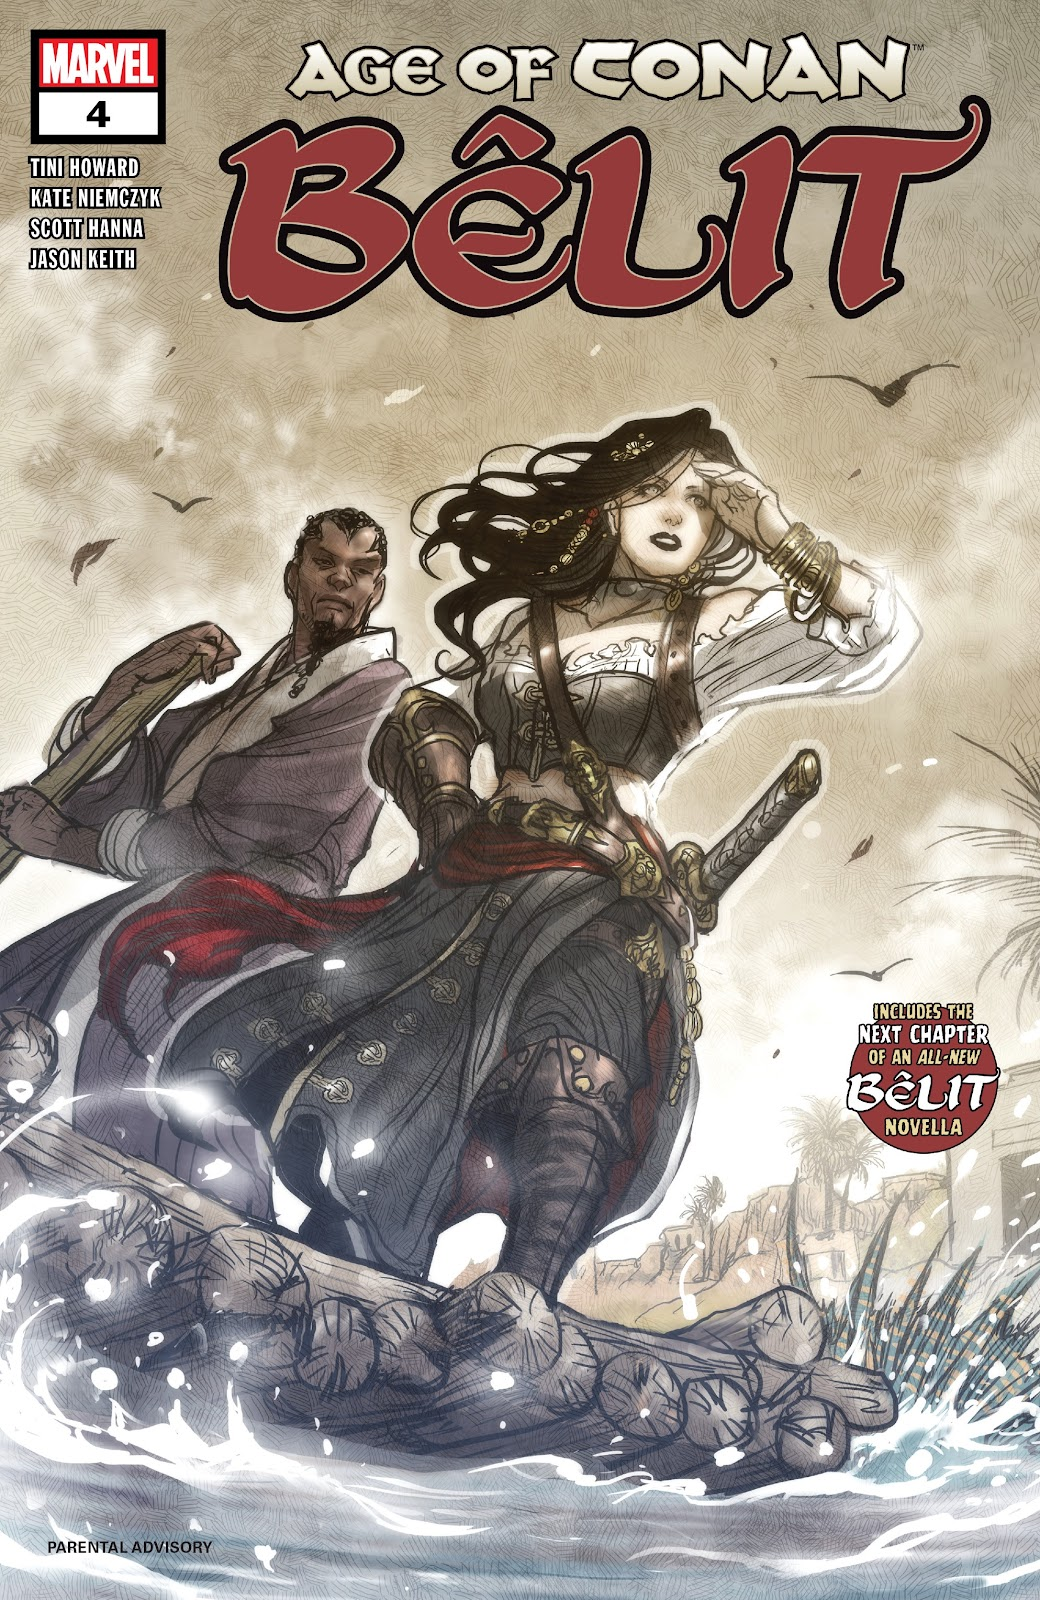 Age of Conan: Belit, Queen of the Black Coast issue 4 - Page 1